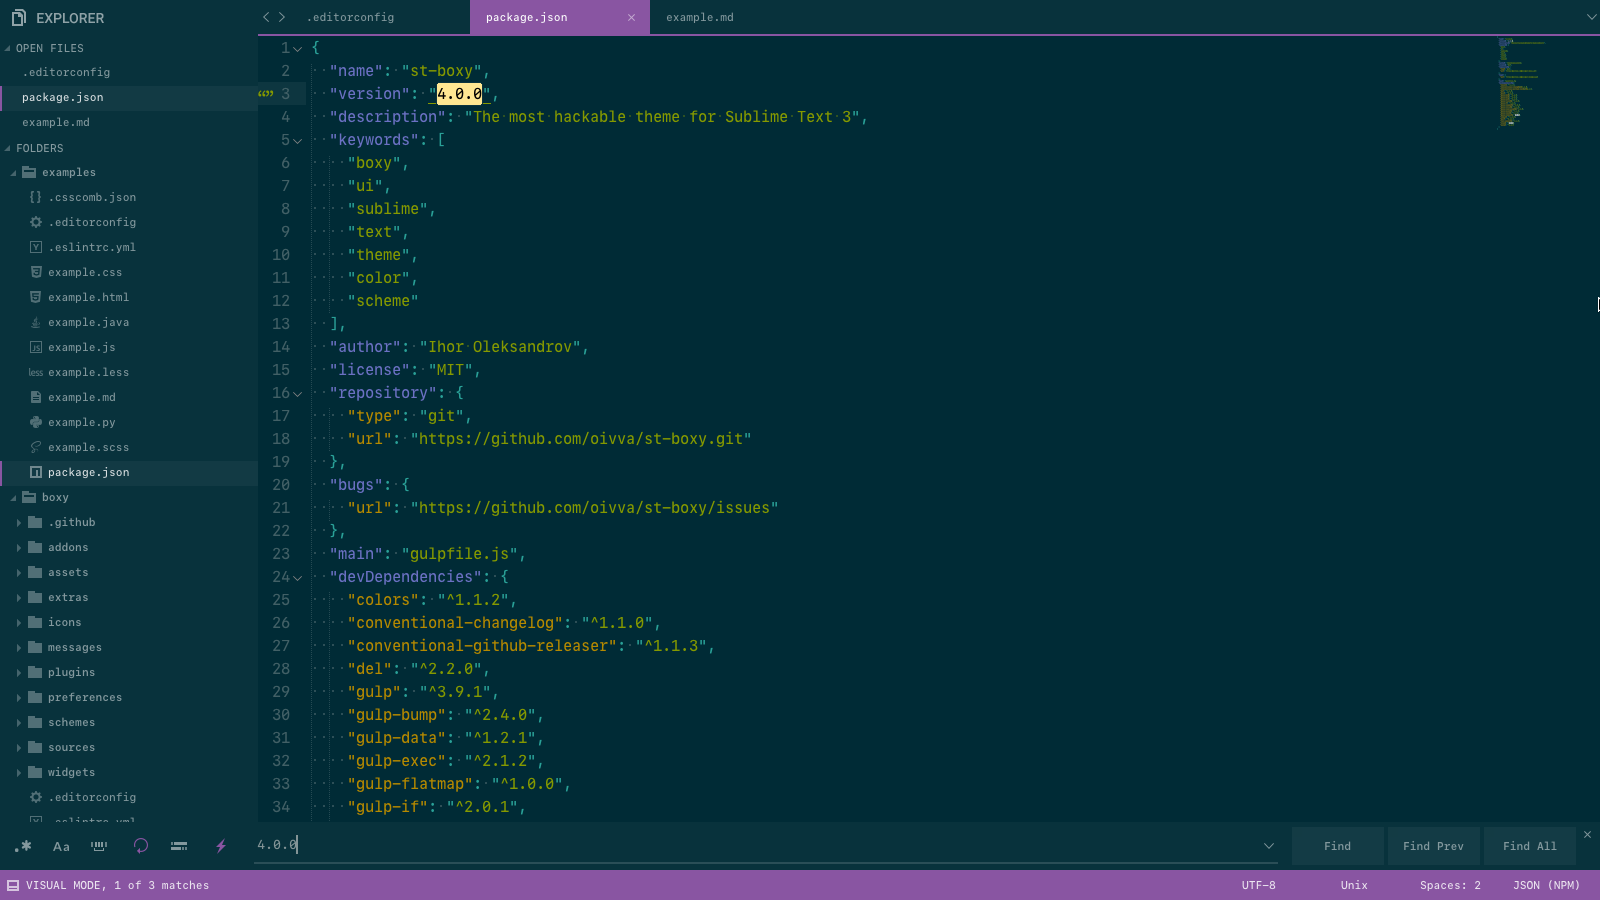 Boxy – It Was the Most Hackable Theme for Sublime Text 3